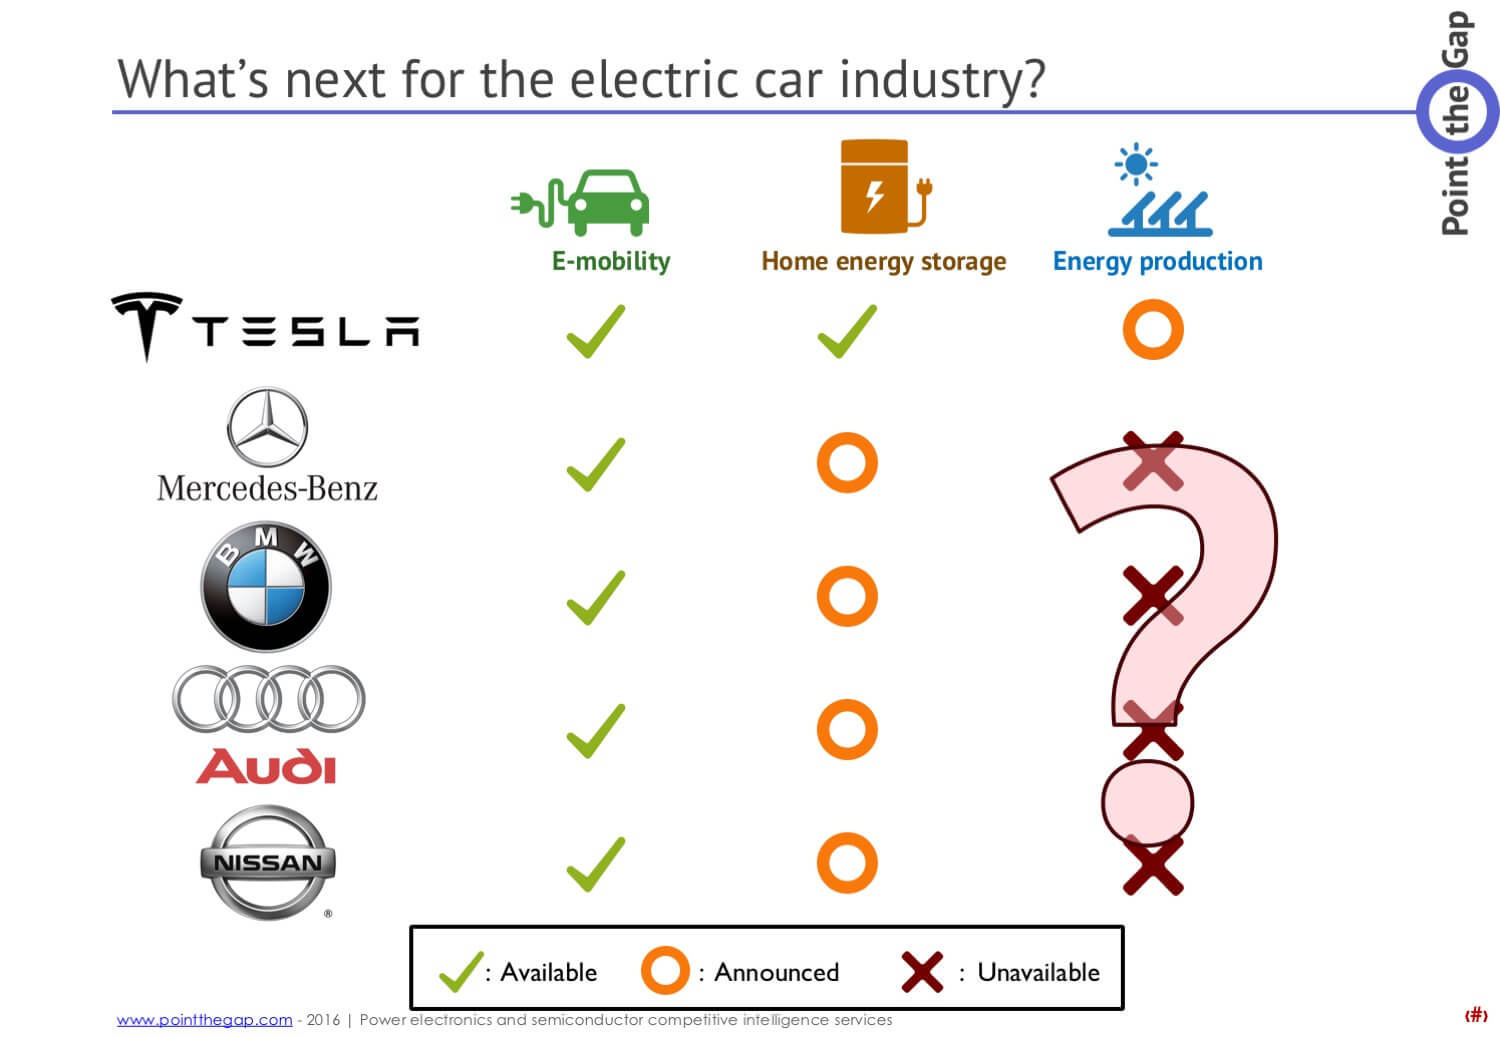 Electric car industry moving to energy storage and production